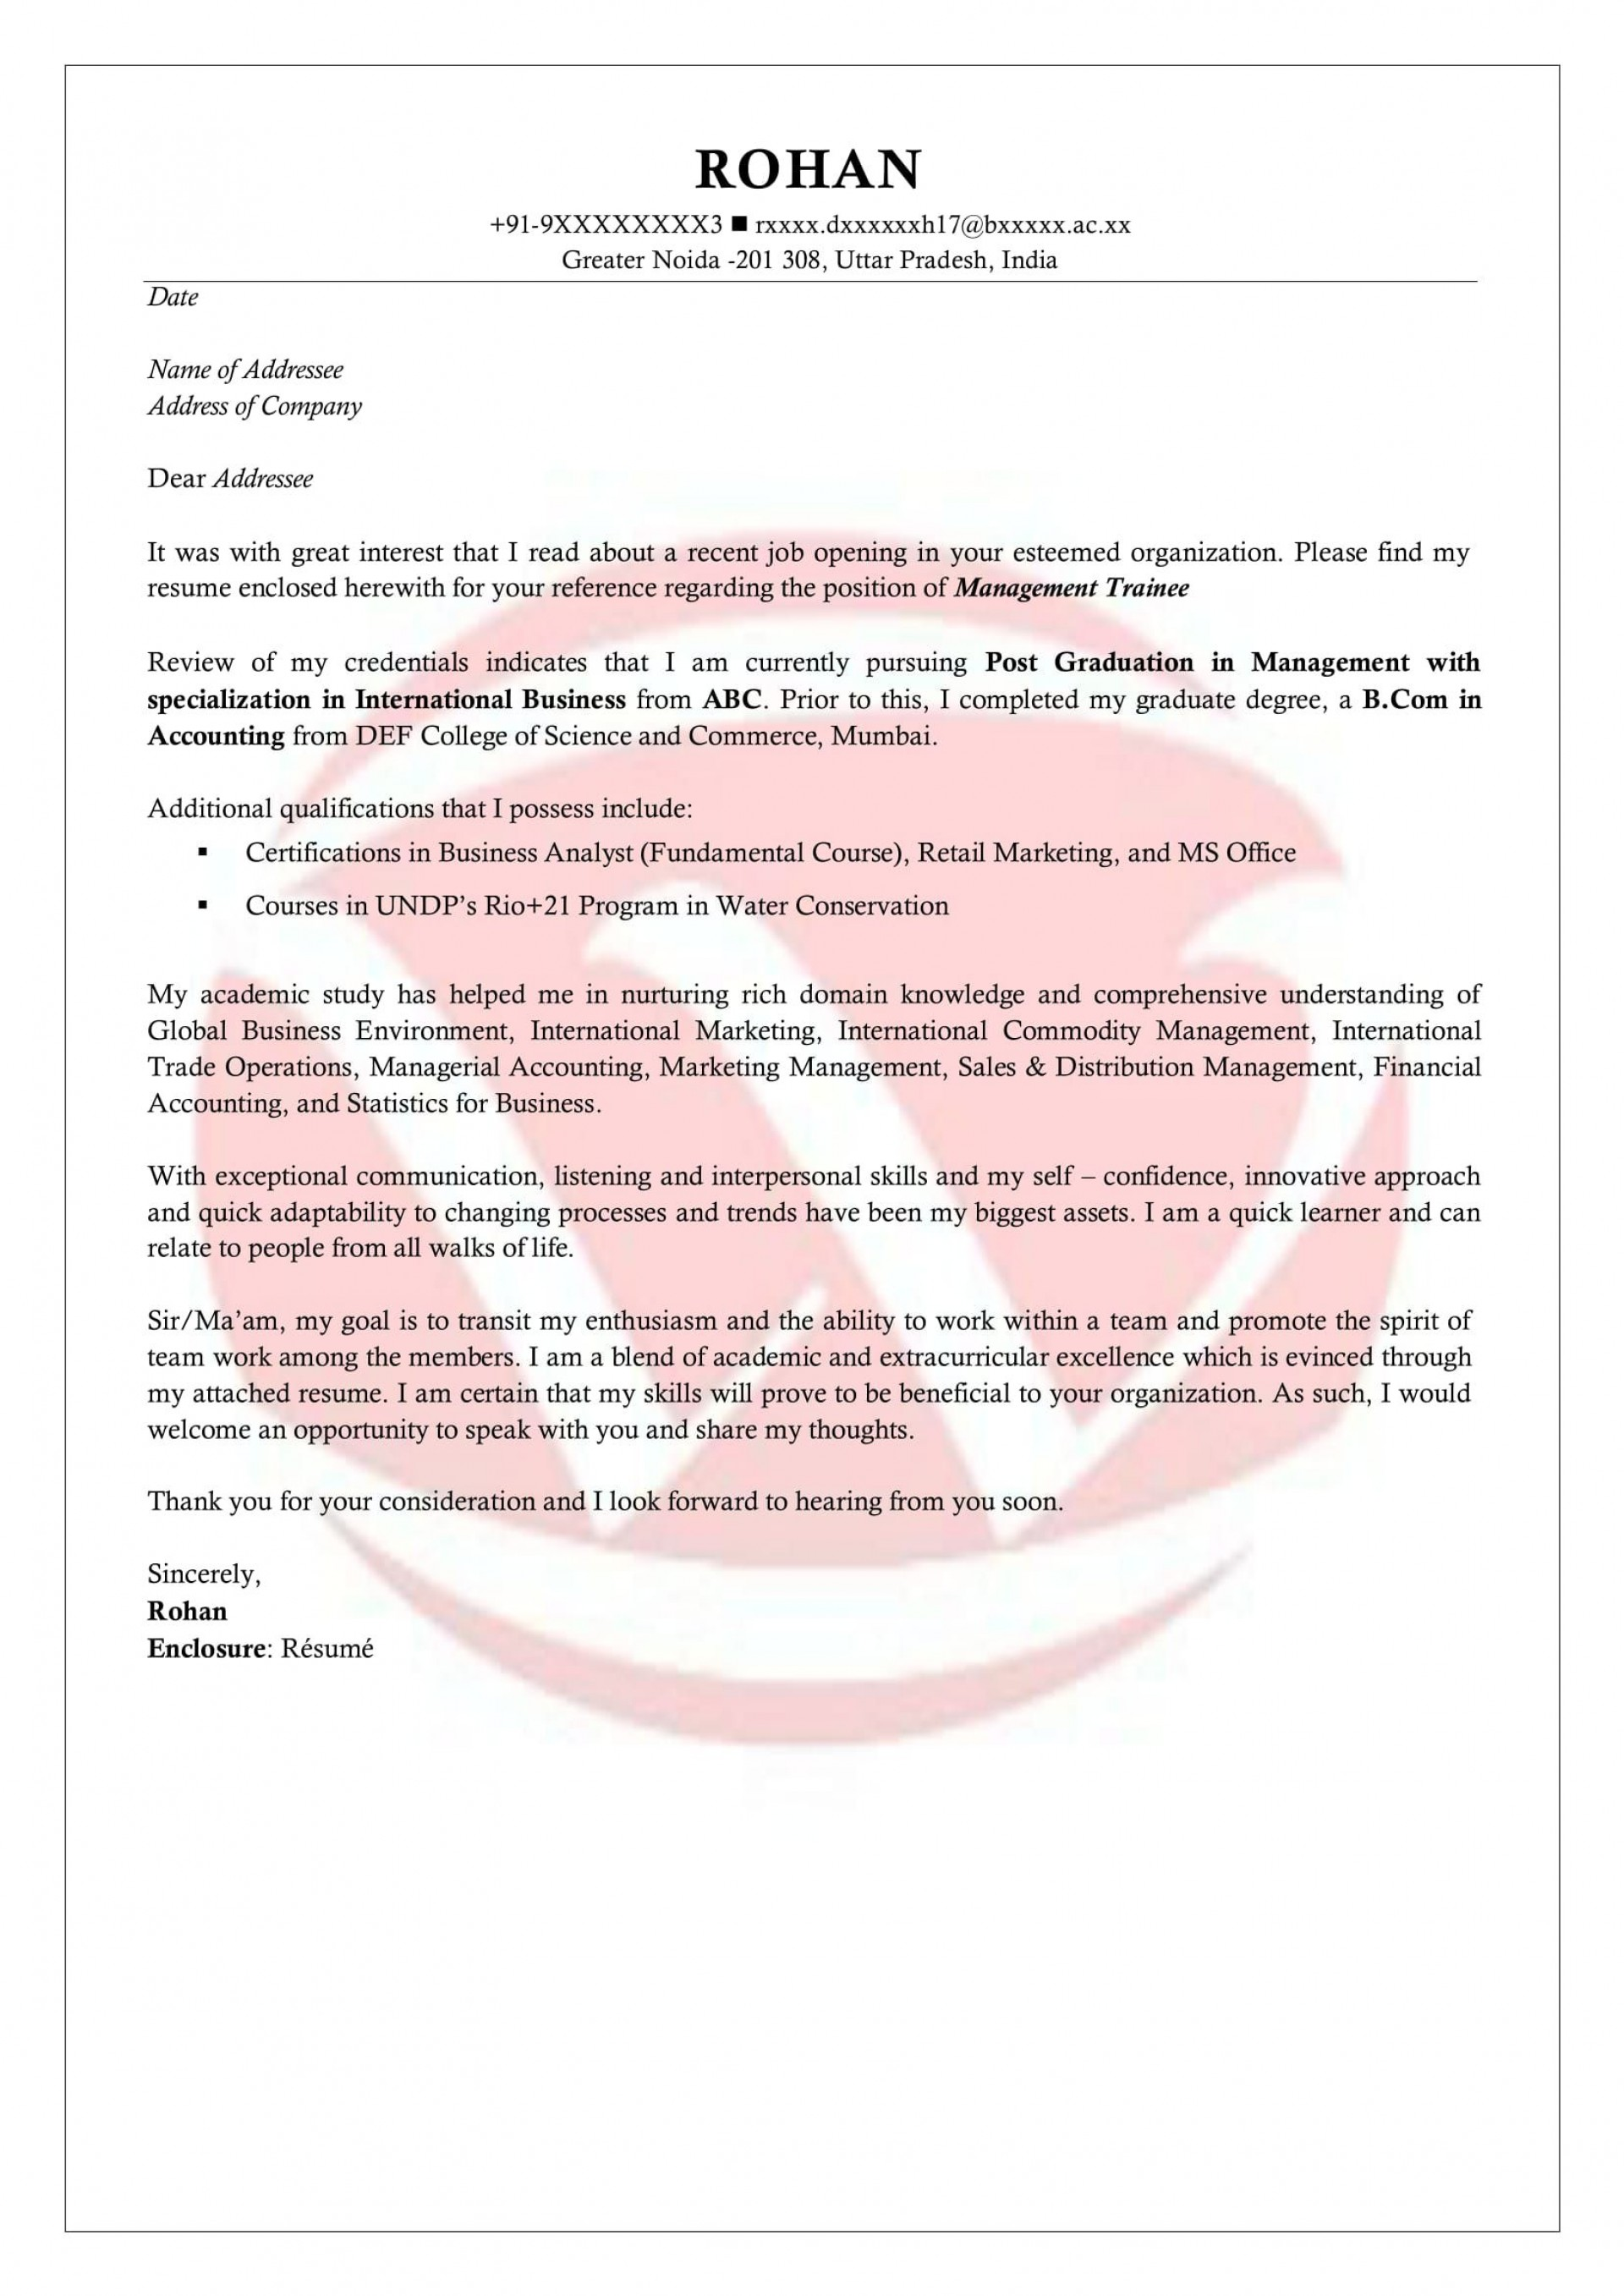 006 Staggering Cover Letter For Internship Template High Definition  Free Engineering Example Summer1920